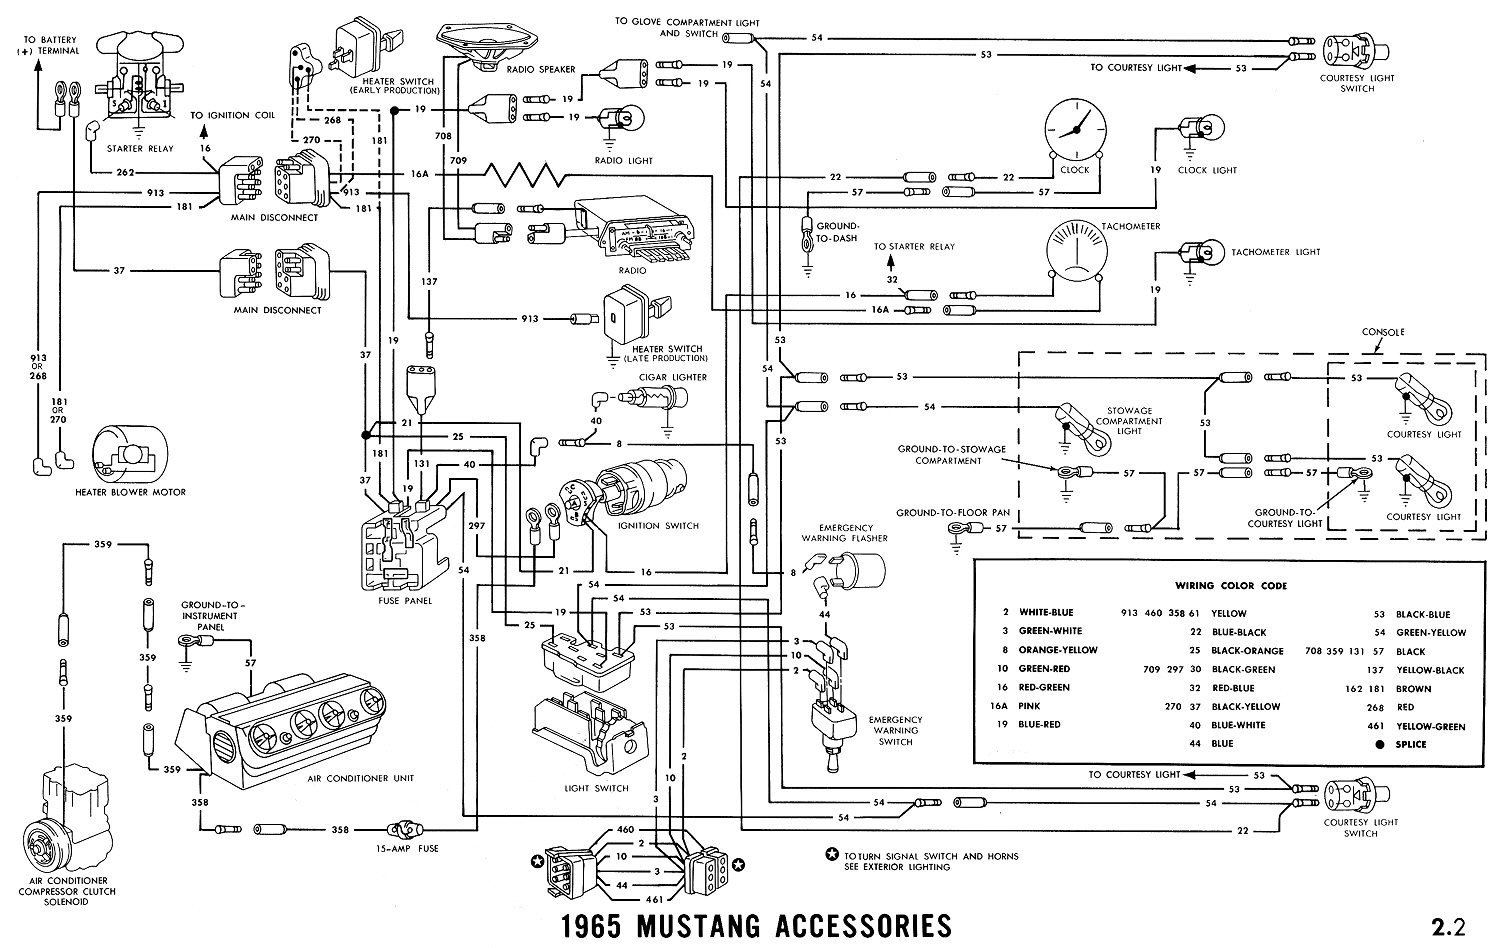 1965i 1965 mustang wiring diagrams average joe restoration  at readyjetset.co